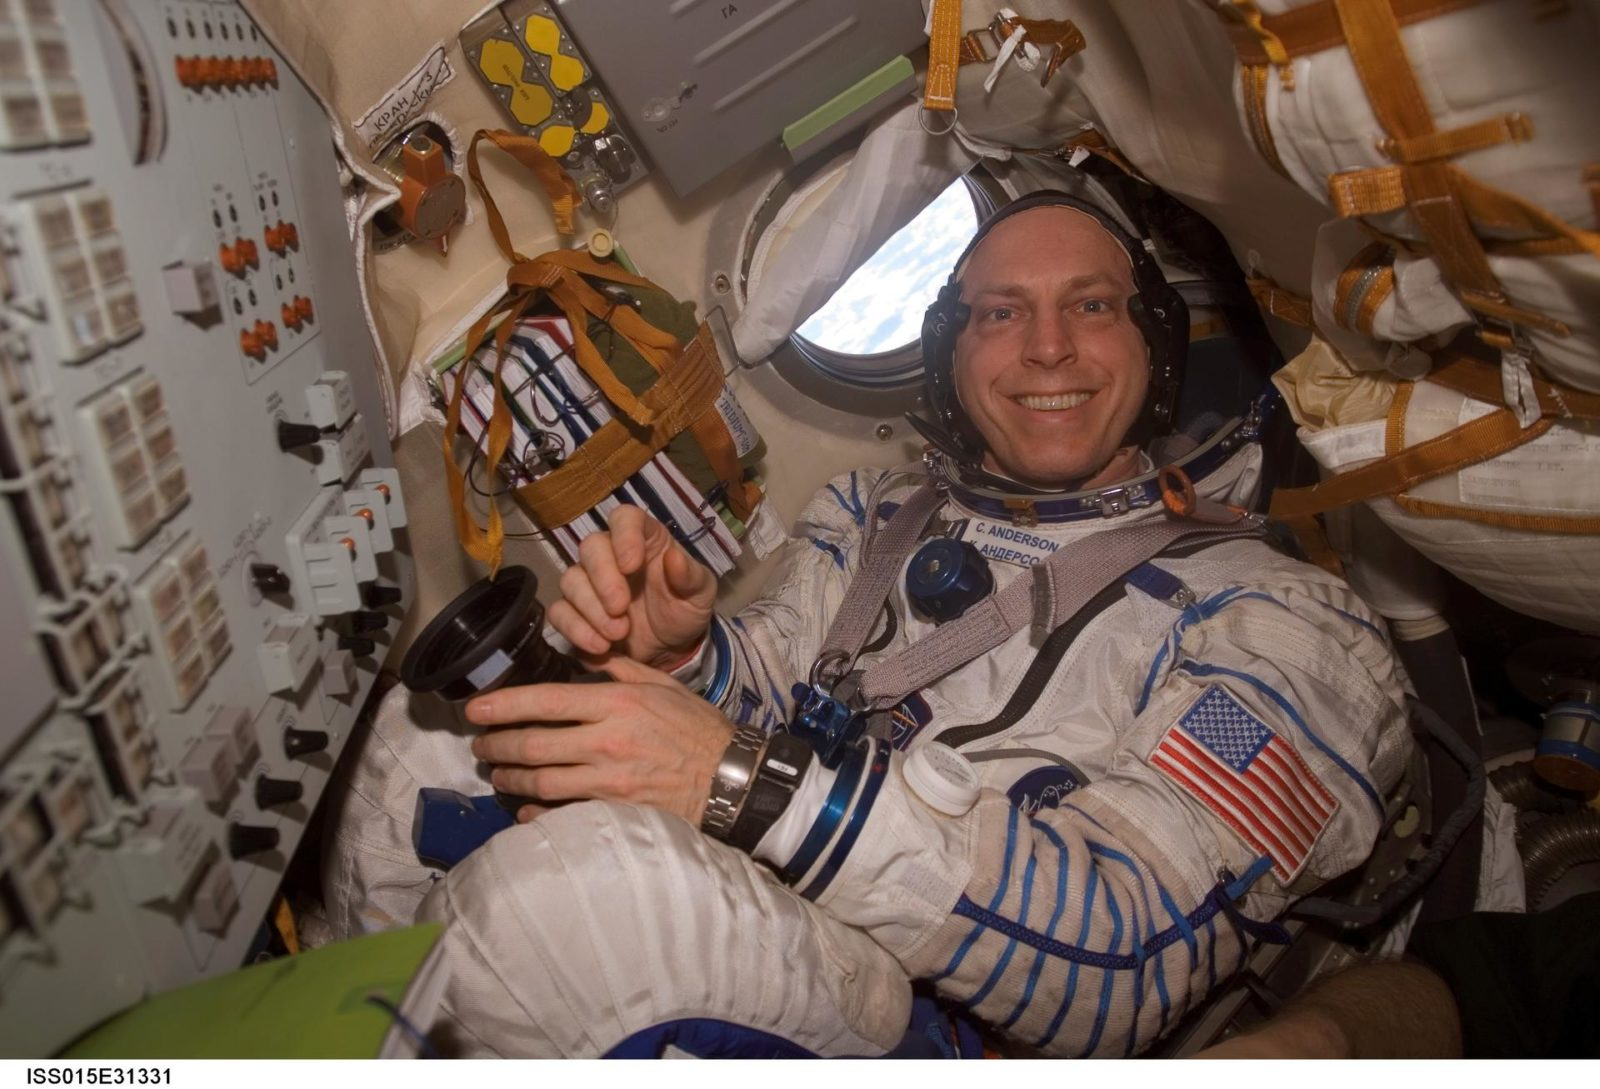 View of Expedition 15 FE Anderson inside a Soyuz Spacecraft